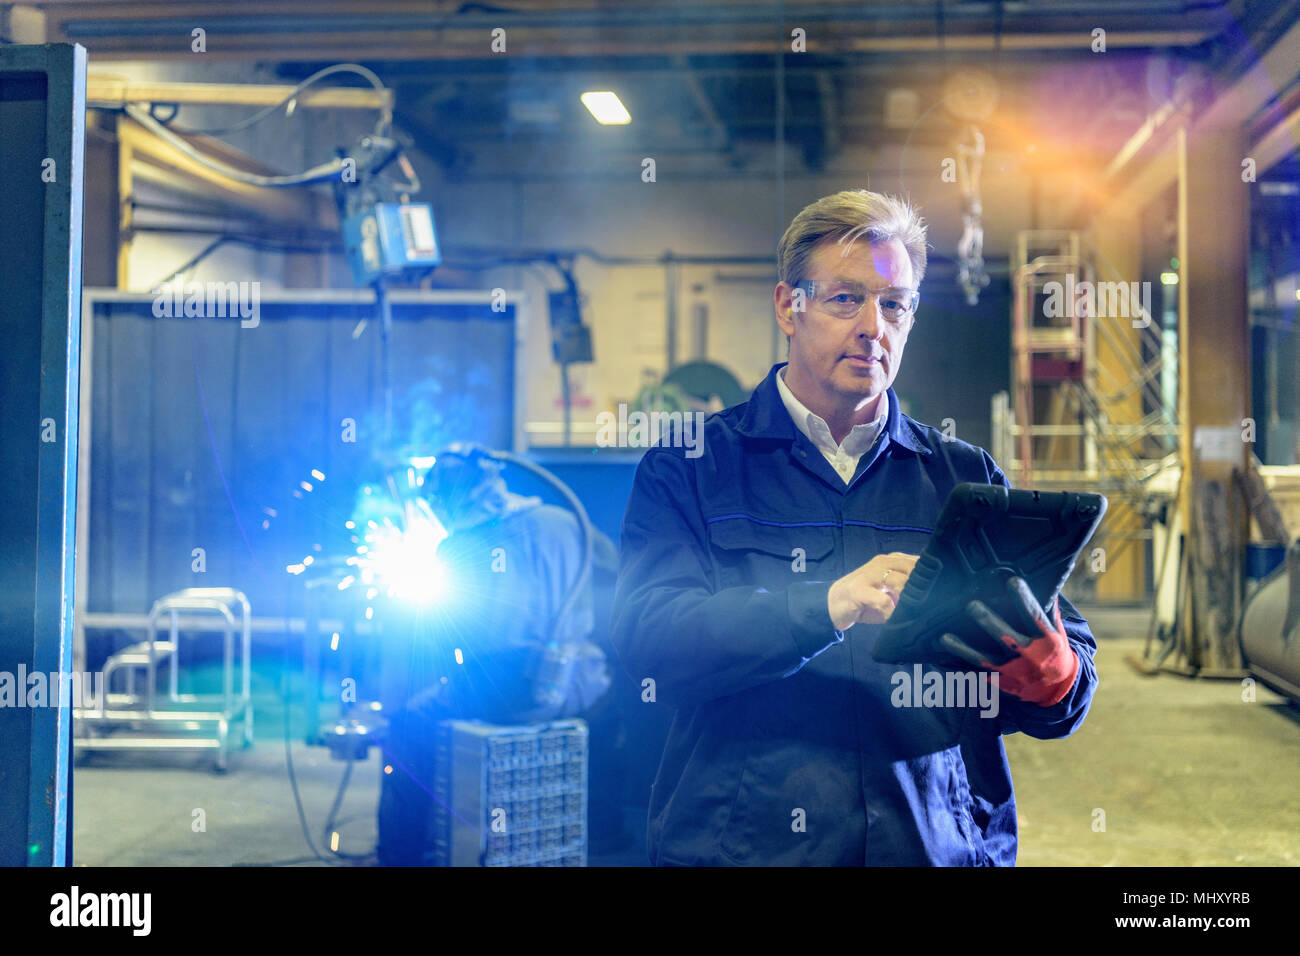 Manager with digital tablet in engineering factory - Stock Image